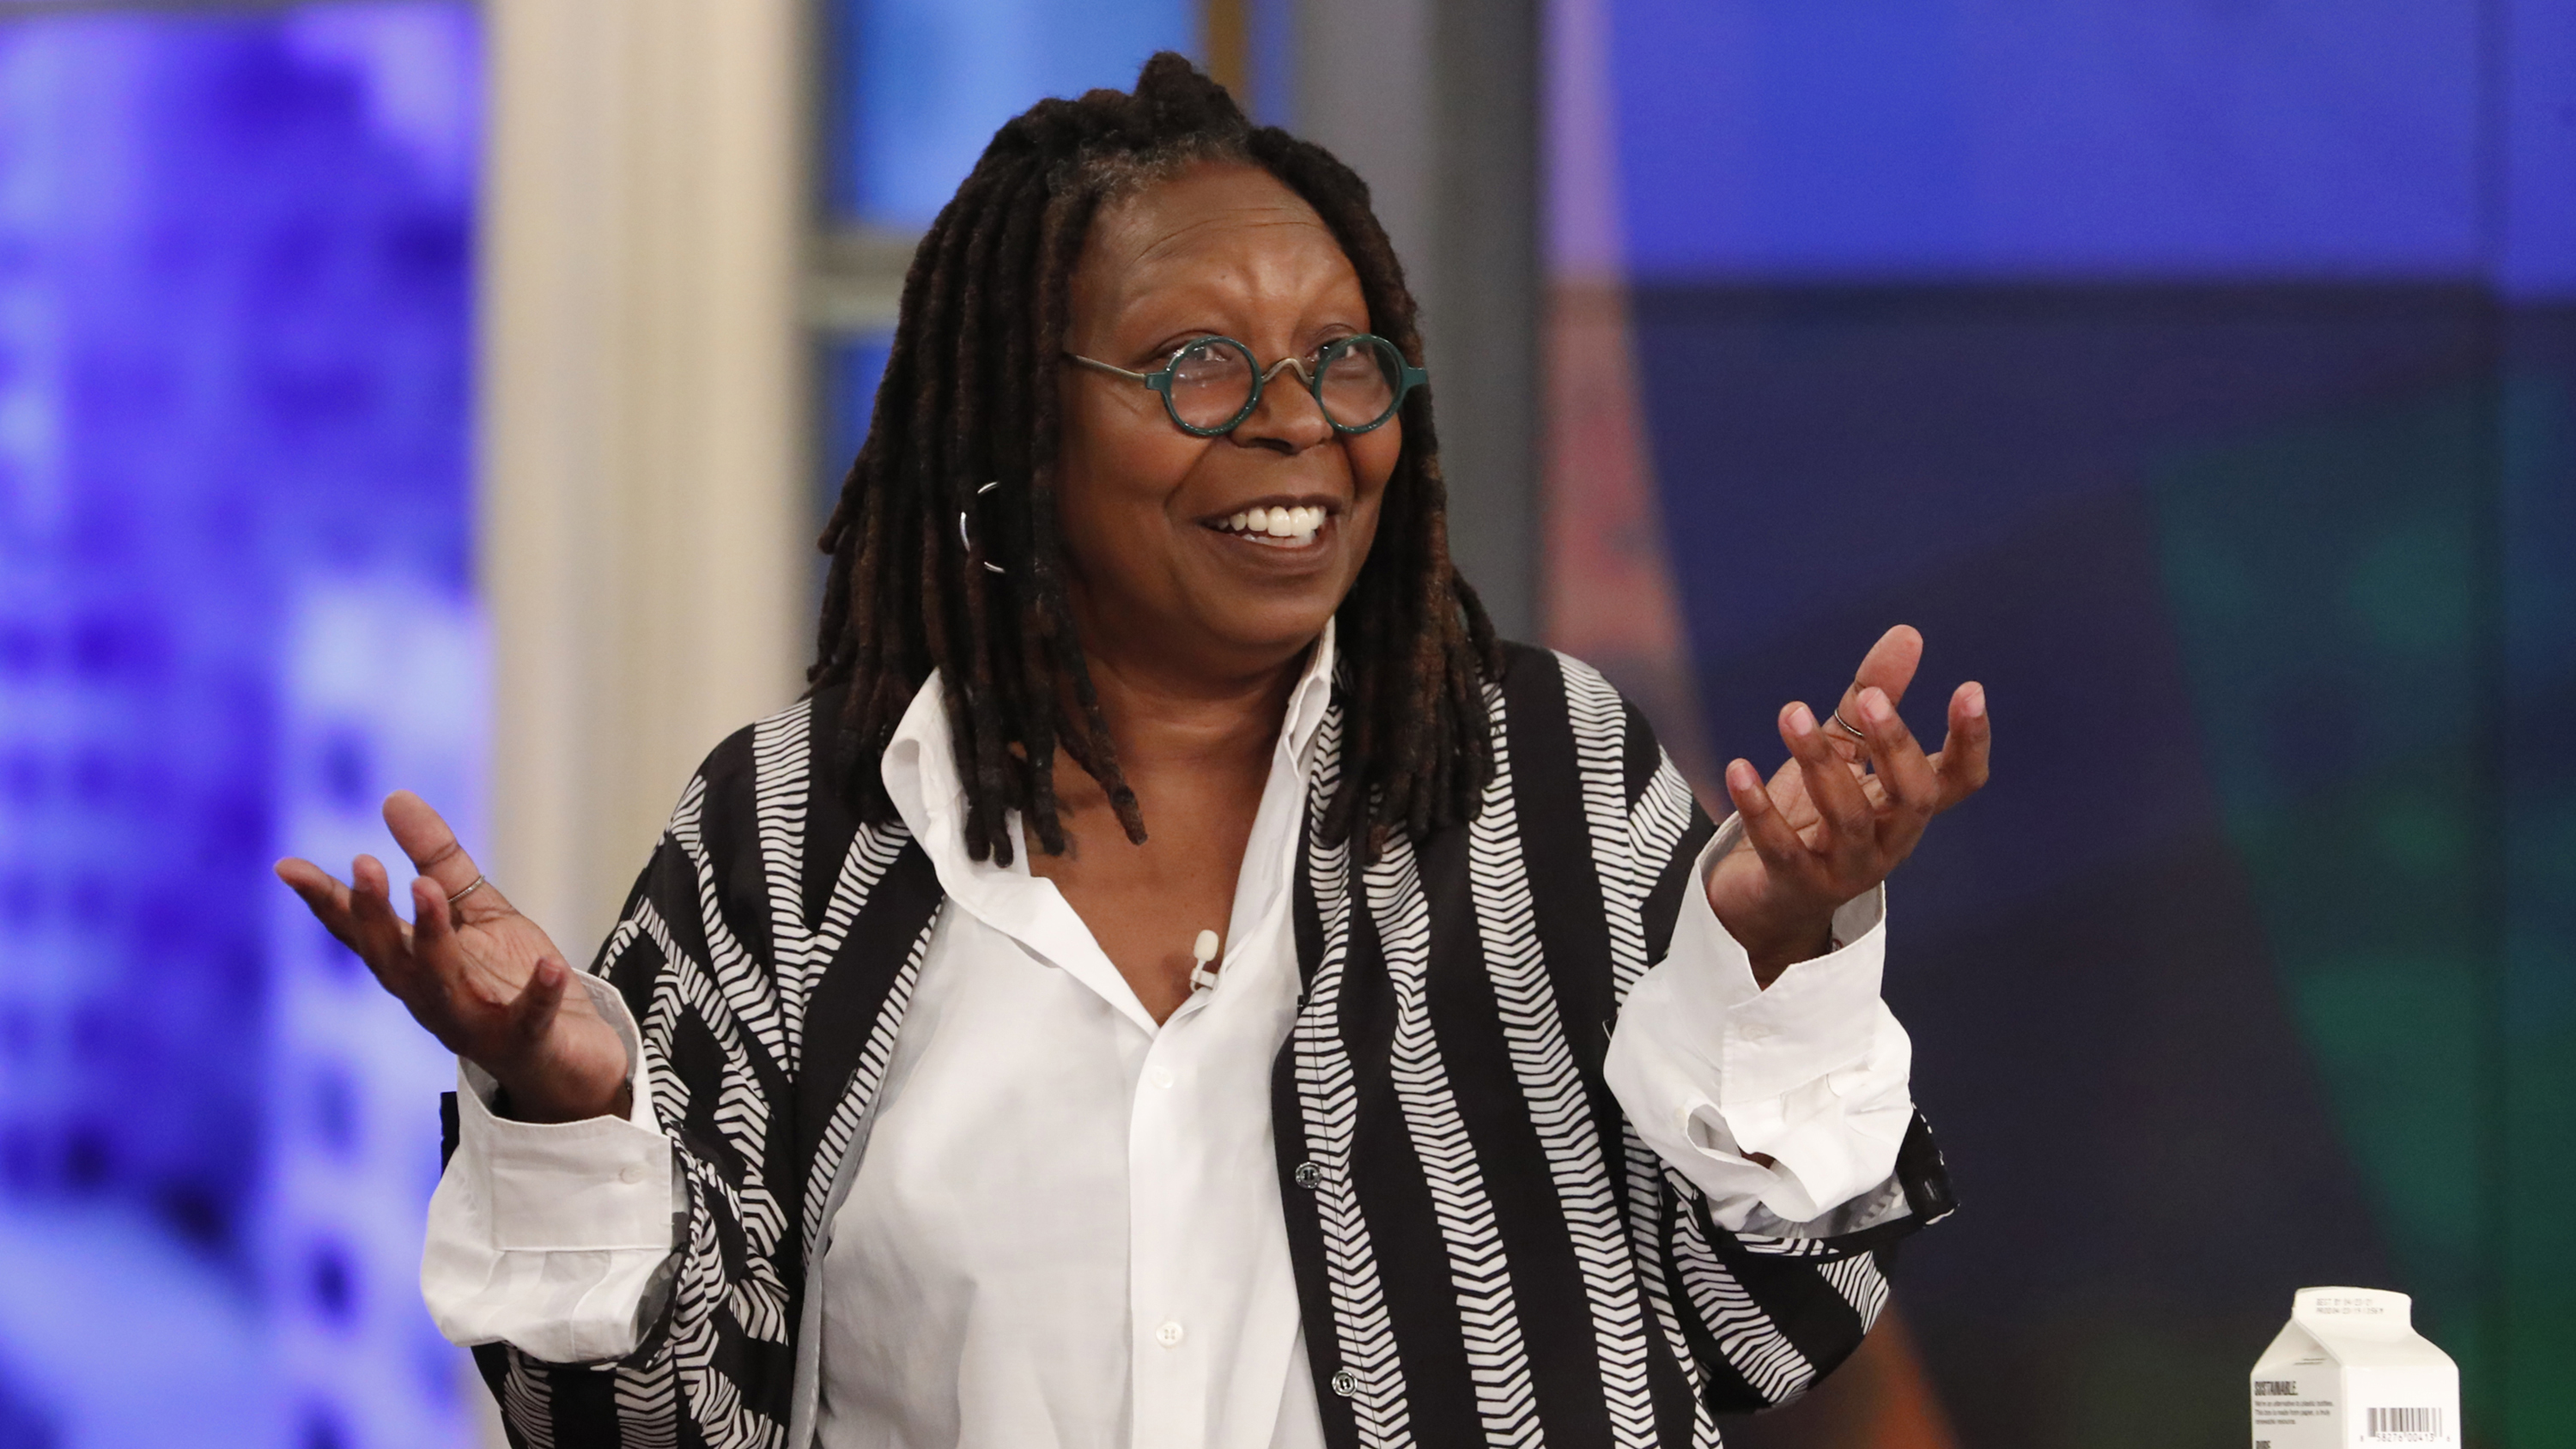 Whoopi Goldberg writes superhero film about an older black woman: 'They are really going to save the Earth'